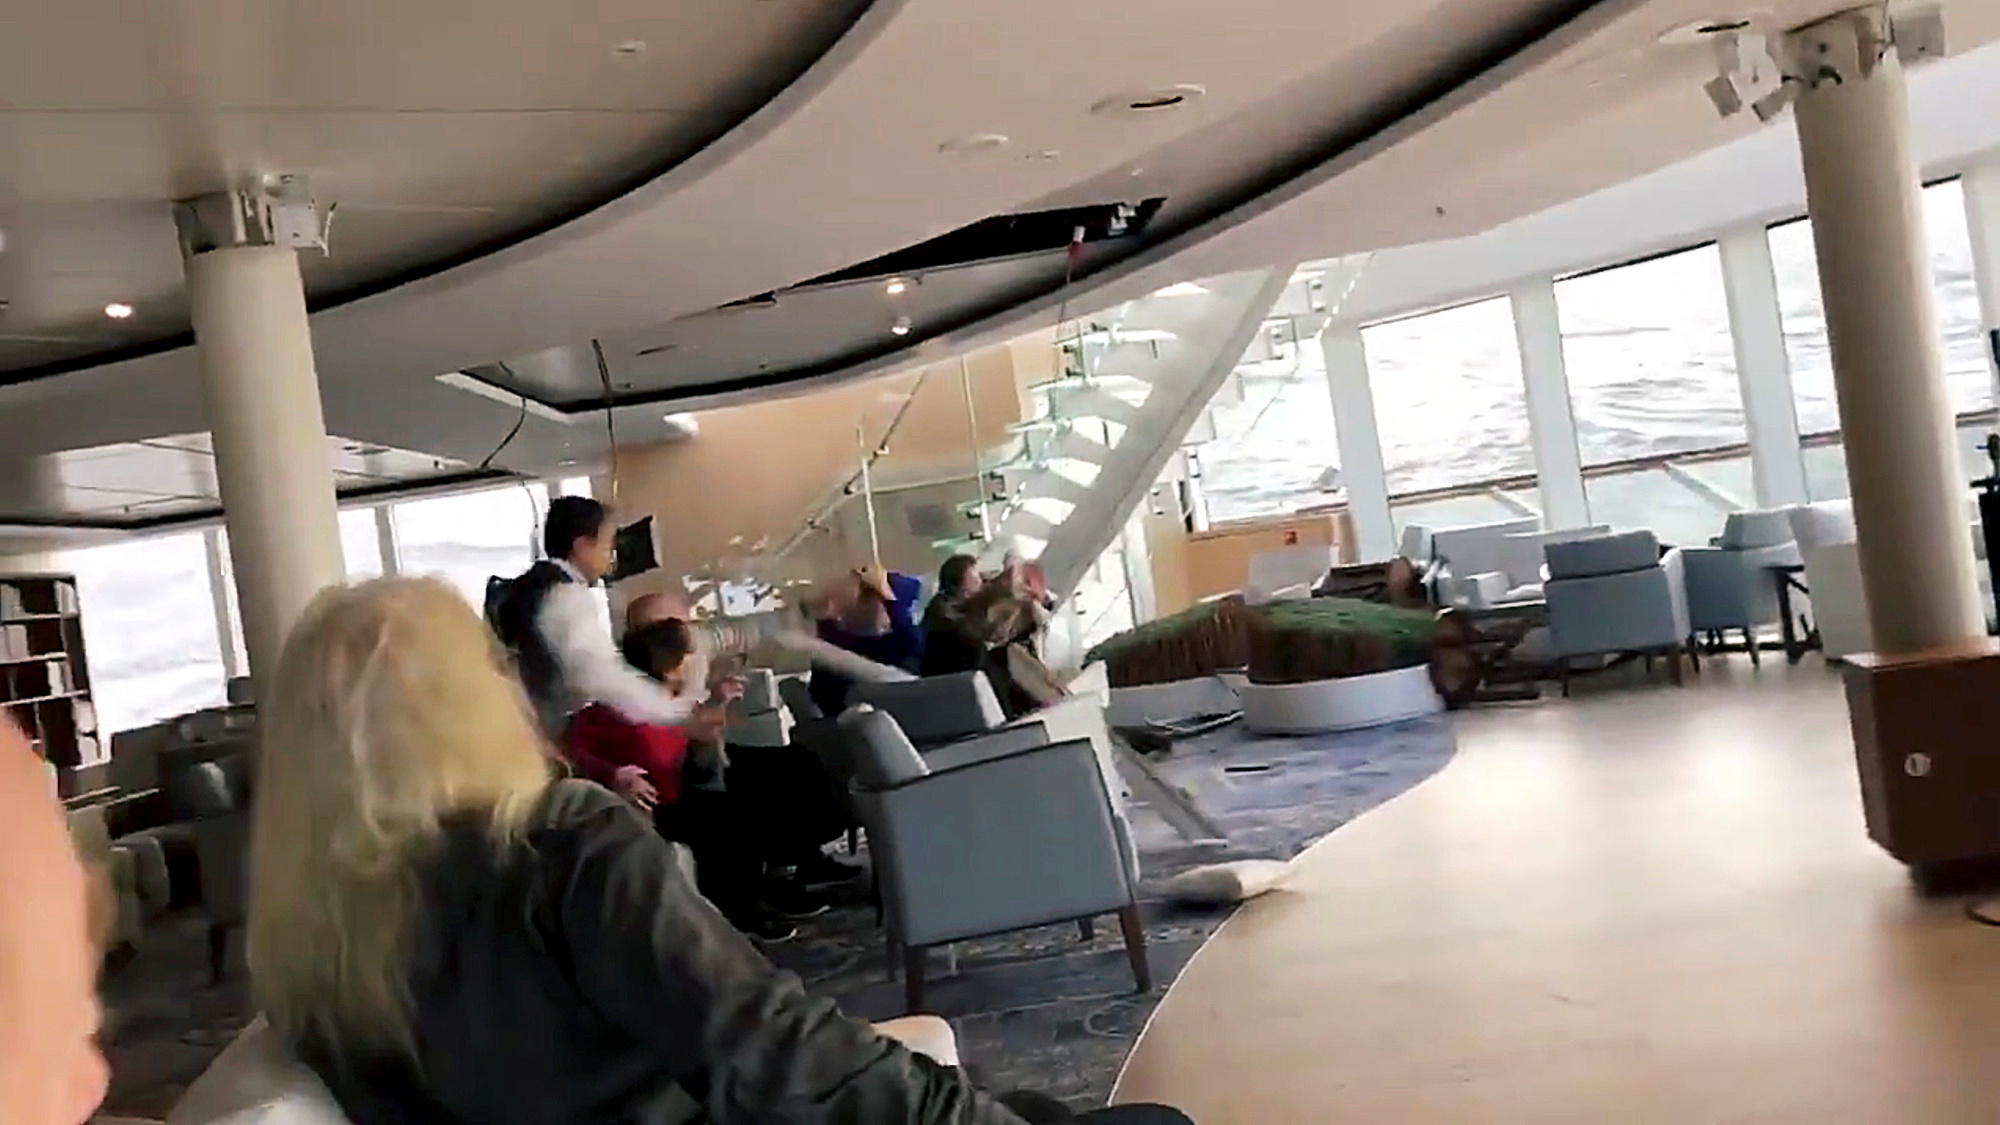 Passengers protect themselves from a collapsing ceiling aboard the cruise ship Viking Sky while listed, after an engine failure, near Hustadvika, Norway, March 23, 2019, in this still image obtained from a social media video.